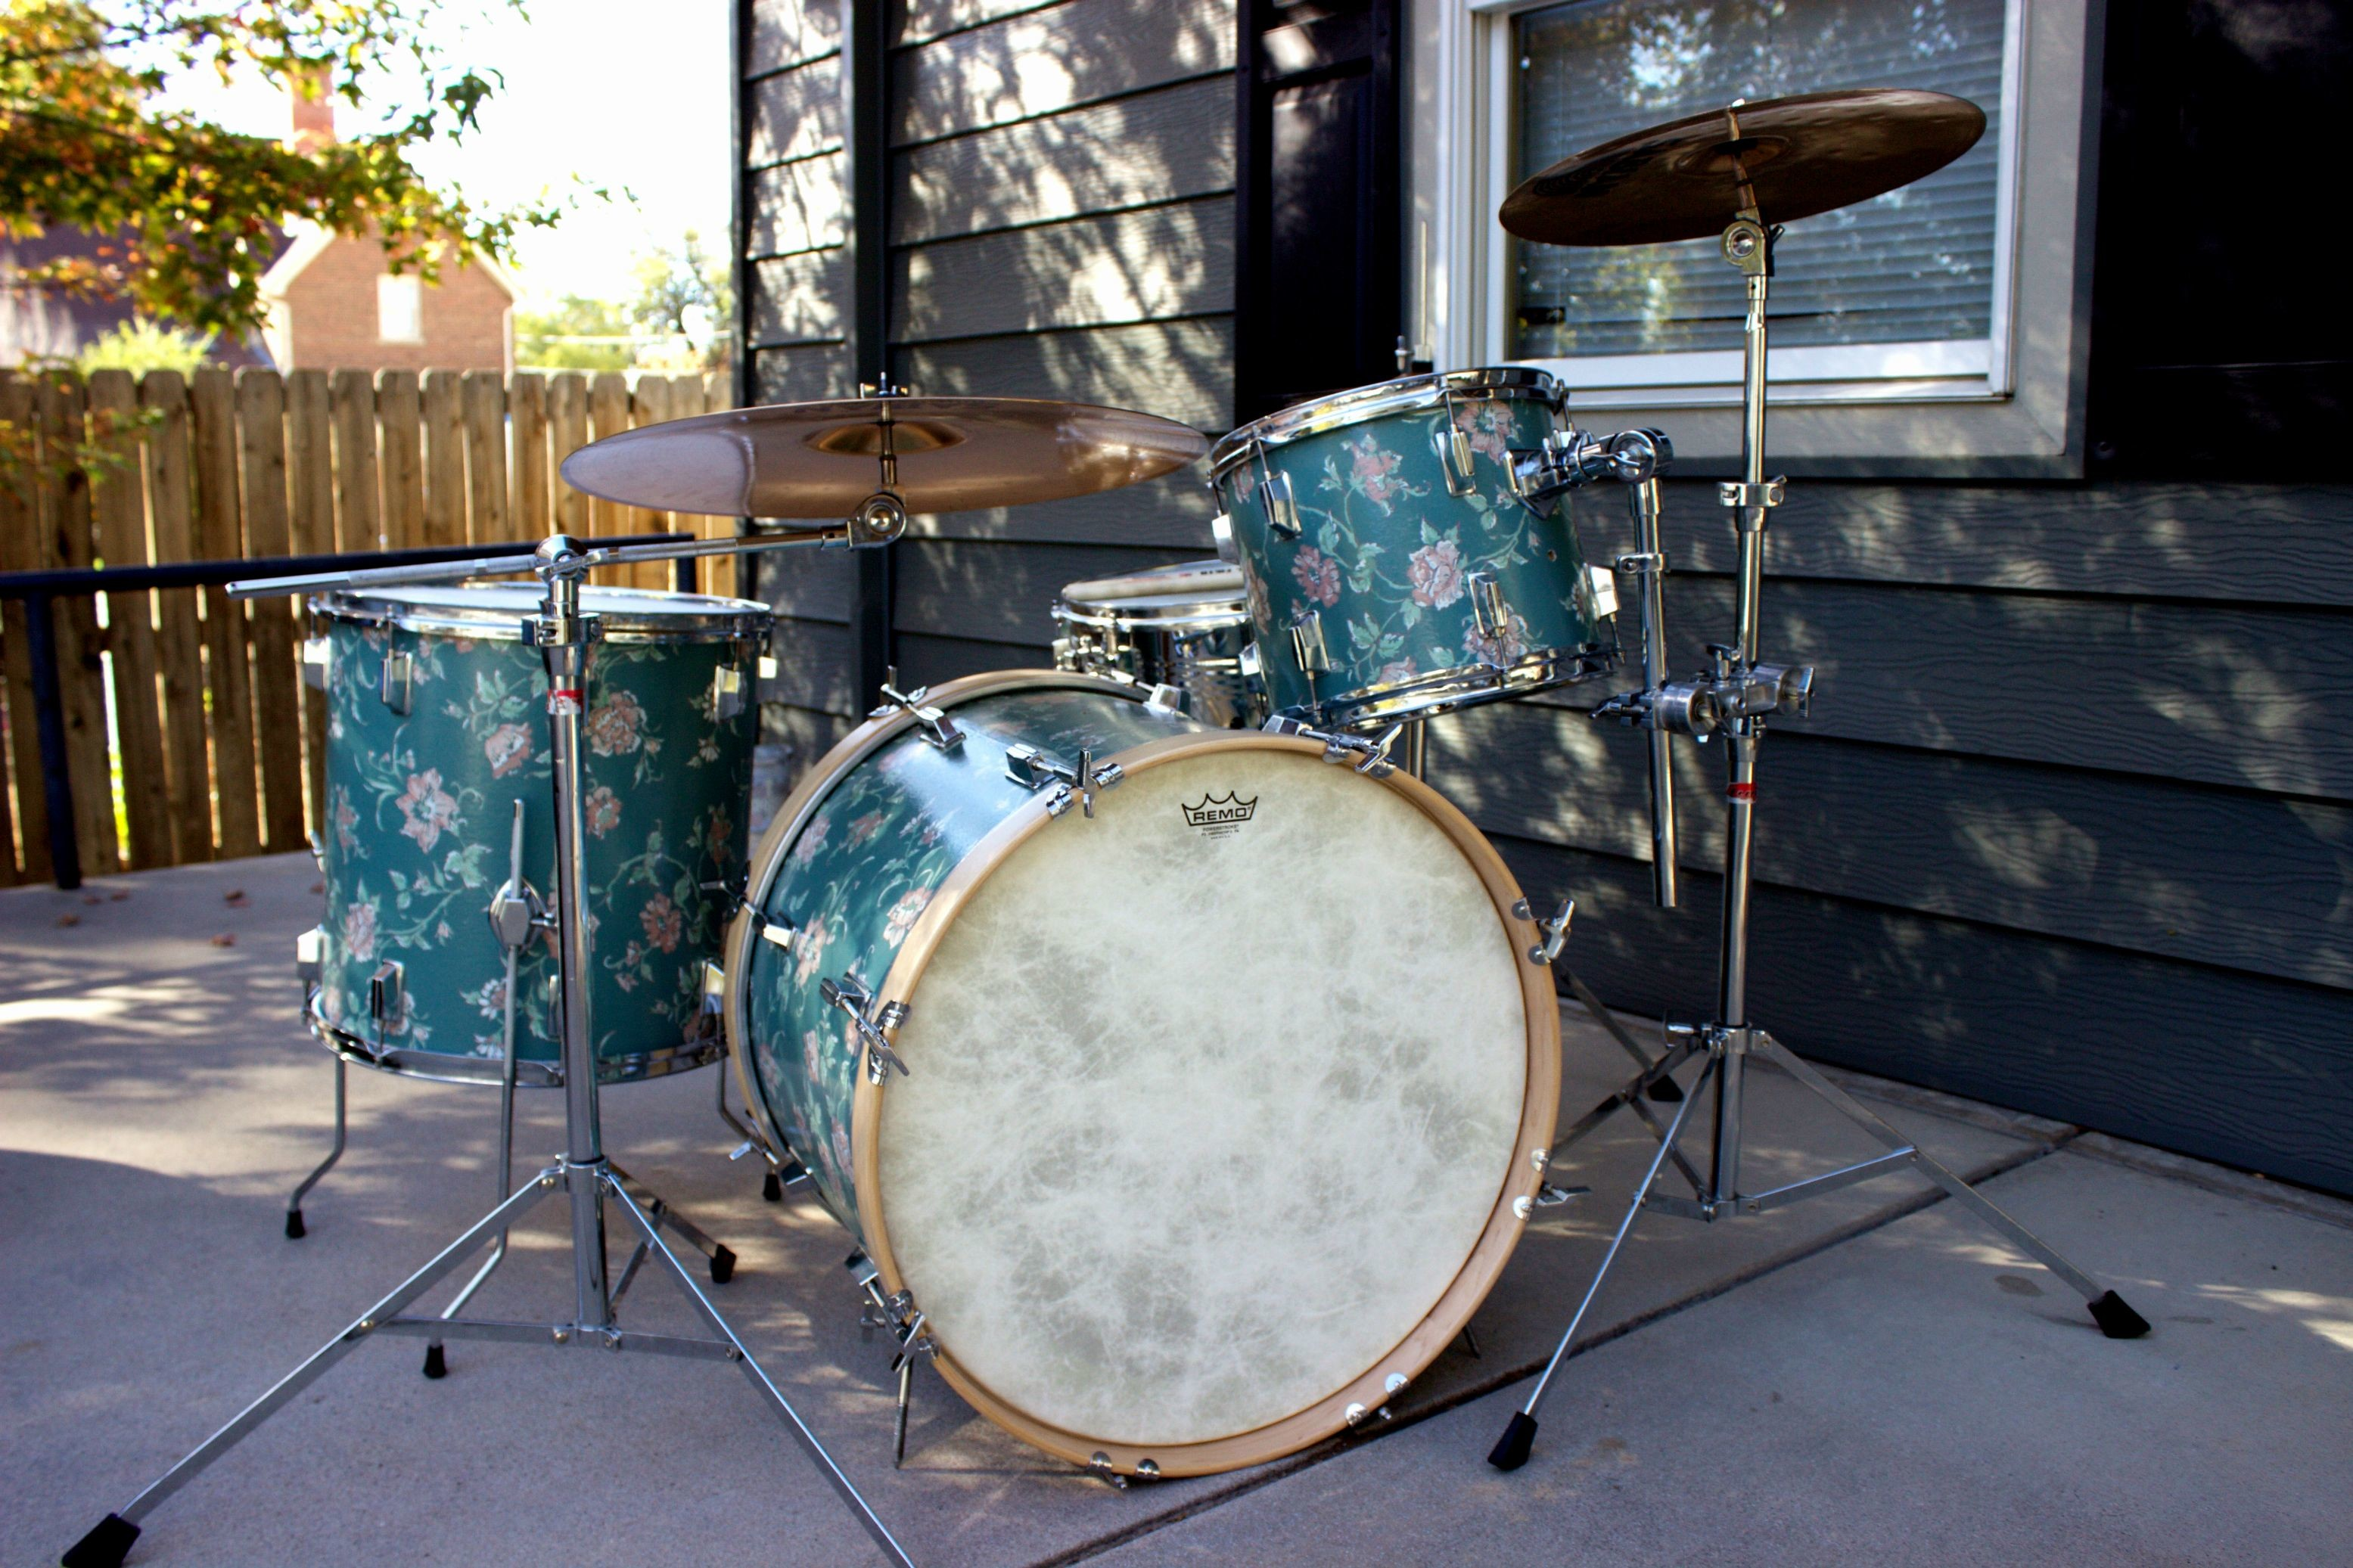 3110x2073 So I refinished my drum set with wallpaper.